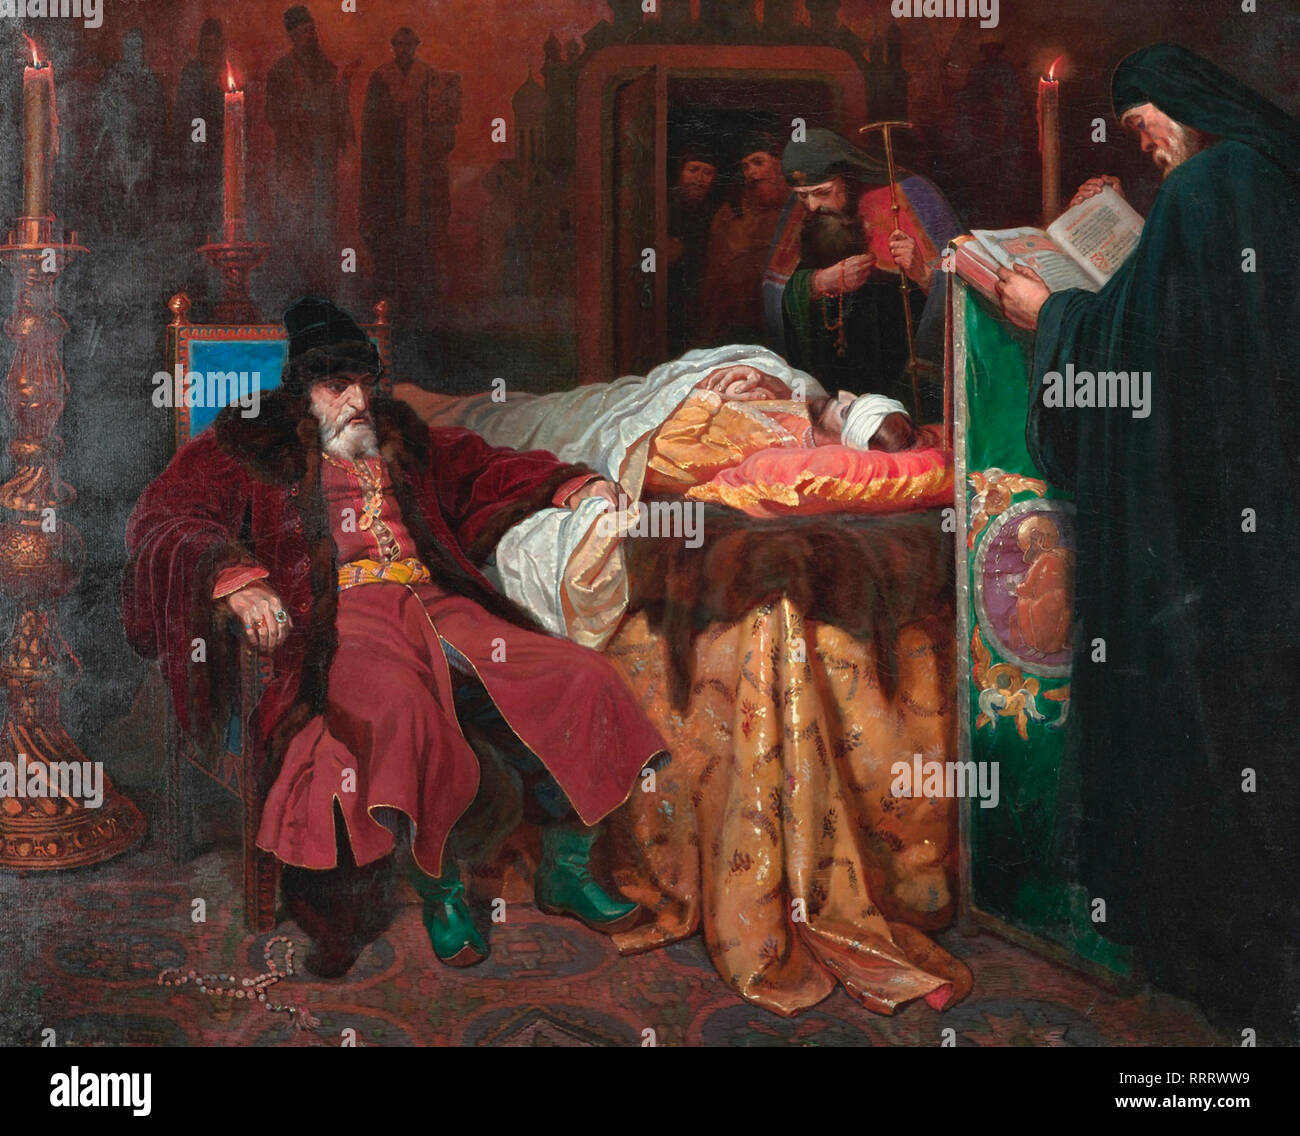 Ivan the Terrible next to the Body of the Son He Has Killed - Vyacheslav Schwarz, 1864 - Stock Image